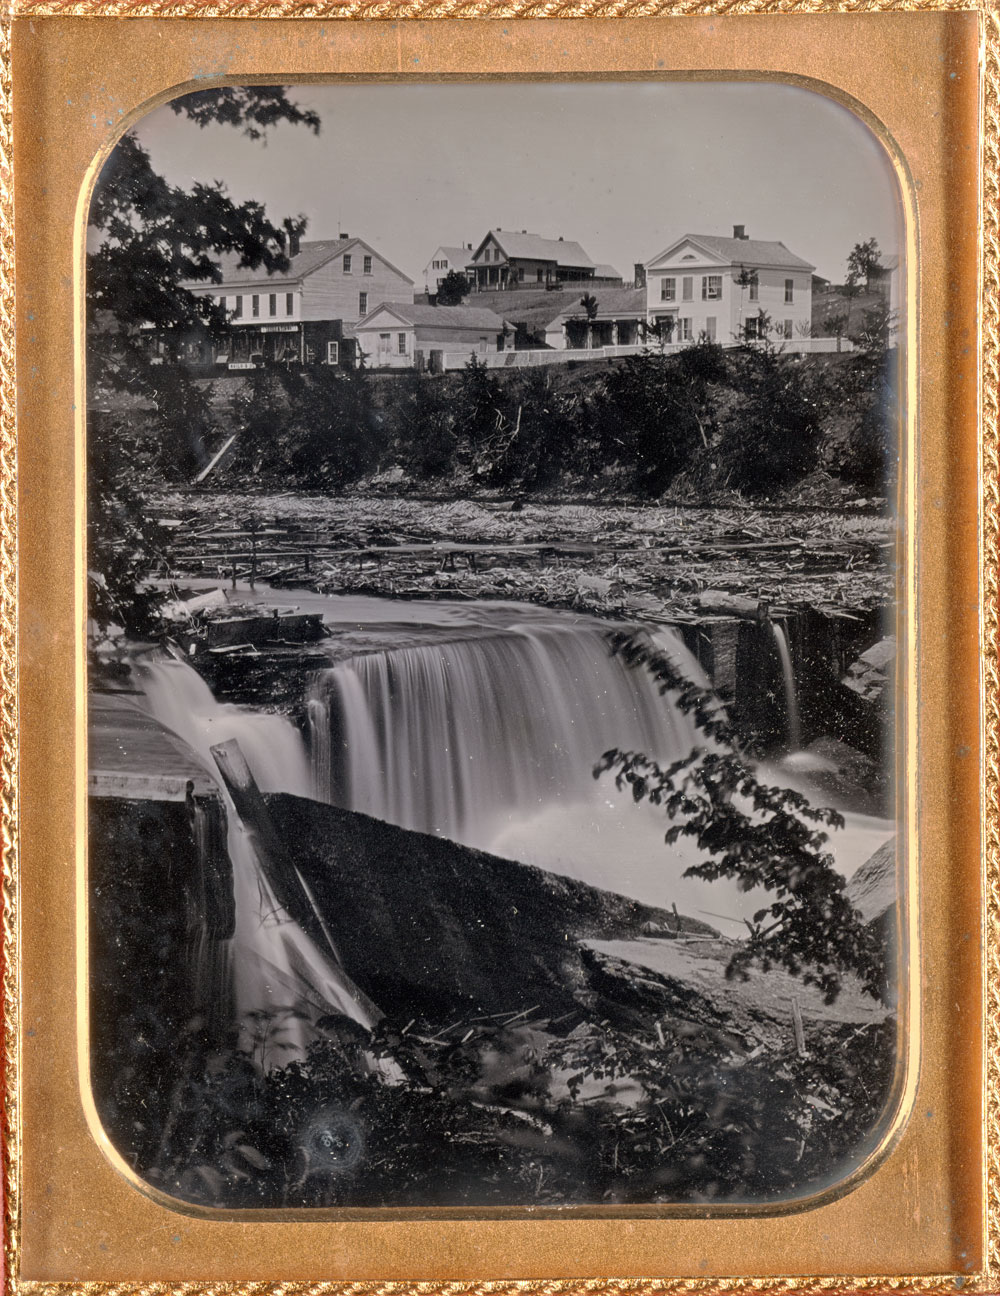 Fotó: Unknown<br />St. Anthony Falls<br />c. 1852<br />Daguerreotype, half plate<br />Plate: 5 1/2 x 4 1/2 inches (13.97 x 11.43 cm)<br />Case: 6 x 4 3/4 x 1/2 inches (15.24 x 12.07 x 1.27 cm)<br />Gift of the Hall Family Foundation<br />© Nelson Gallery Foundation